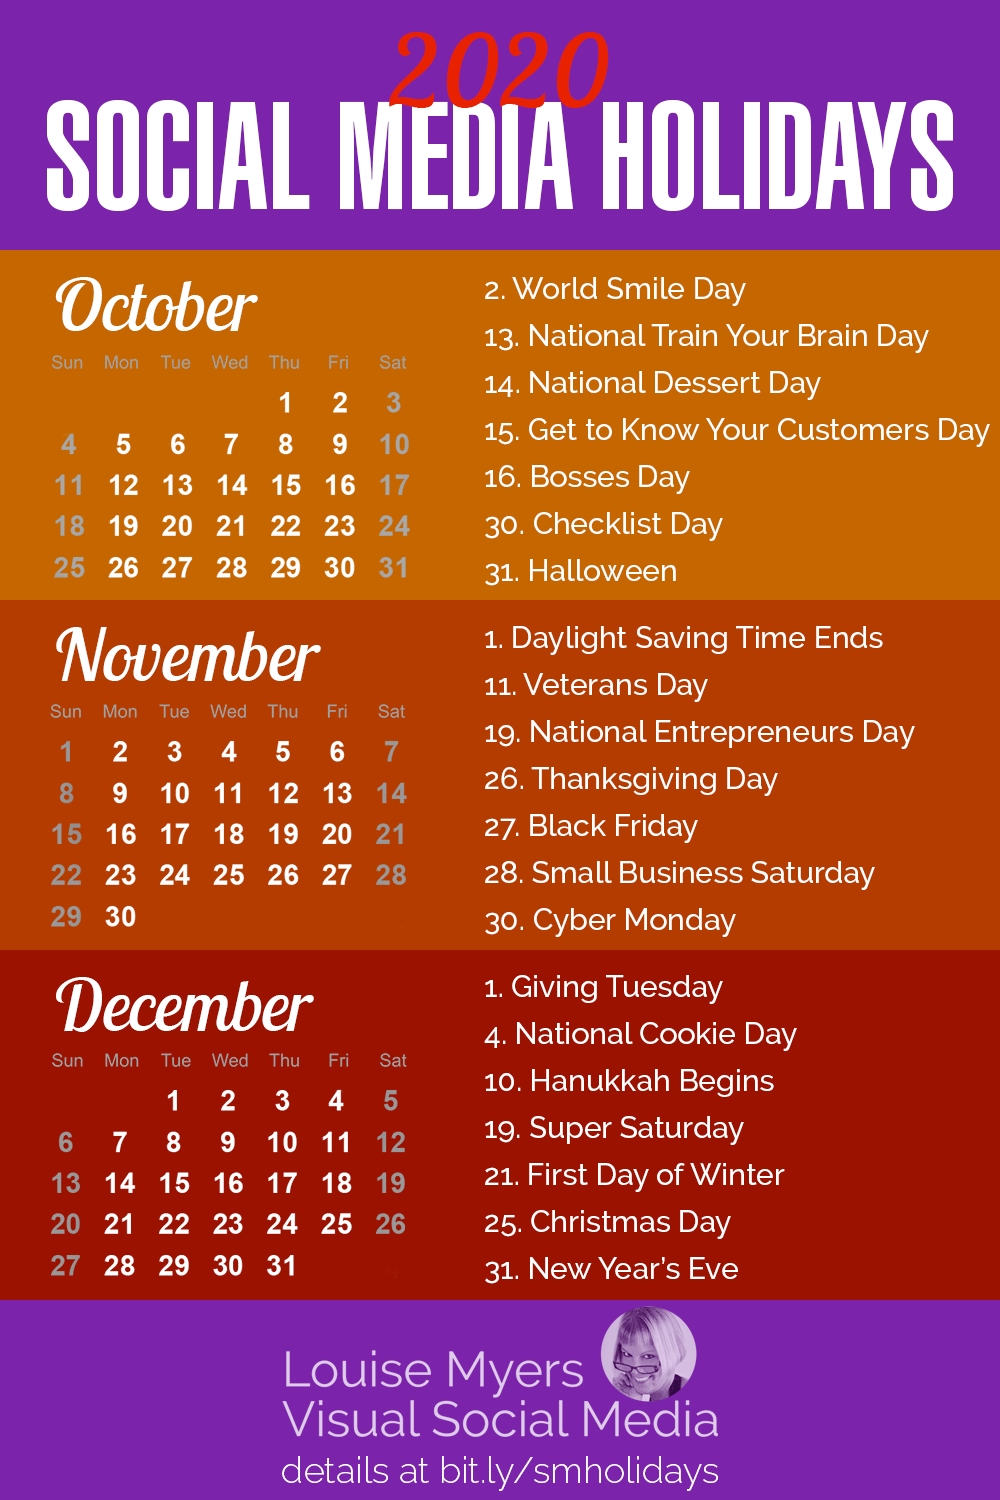 84 Social Media Holidays You Need In 2020: Indispensable! regarding Special Days By Month In 2020